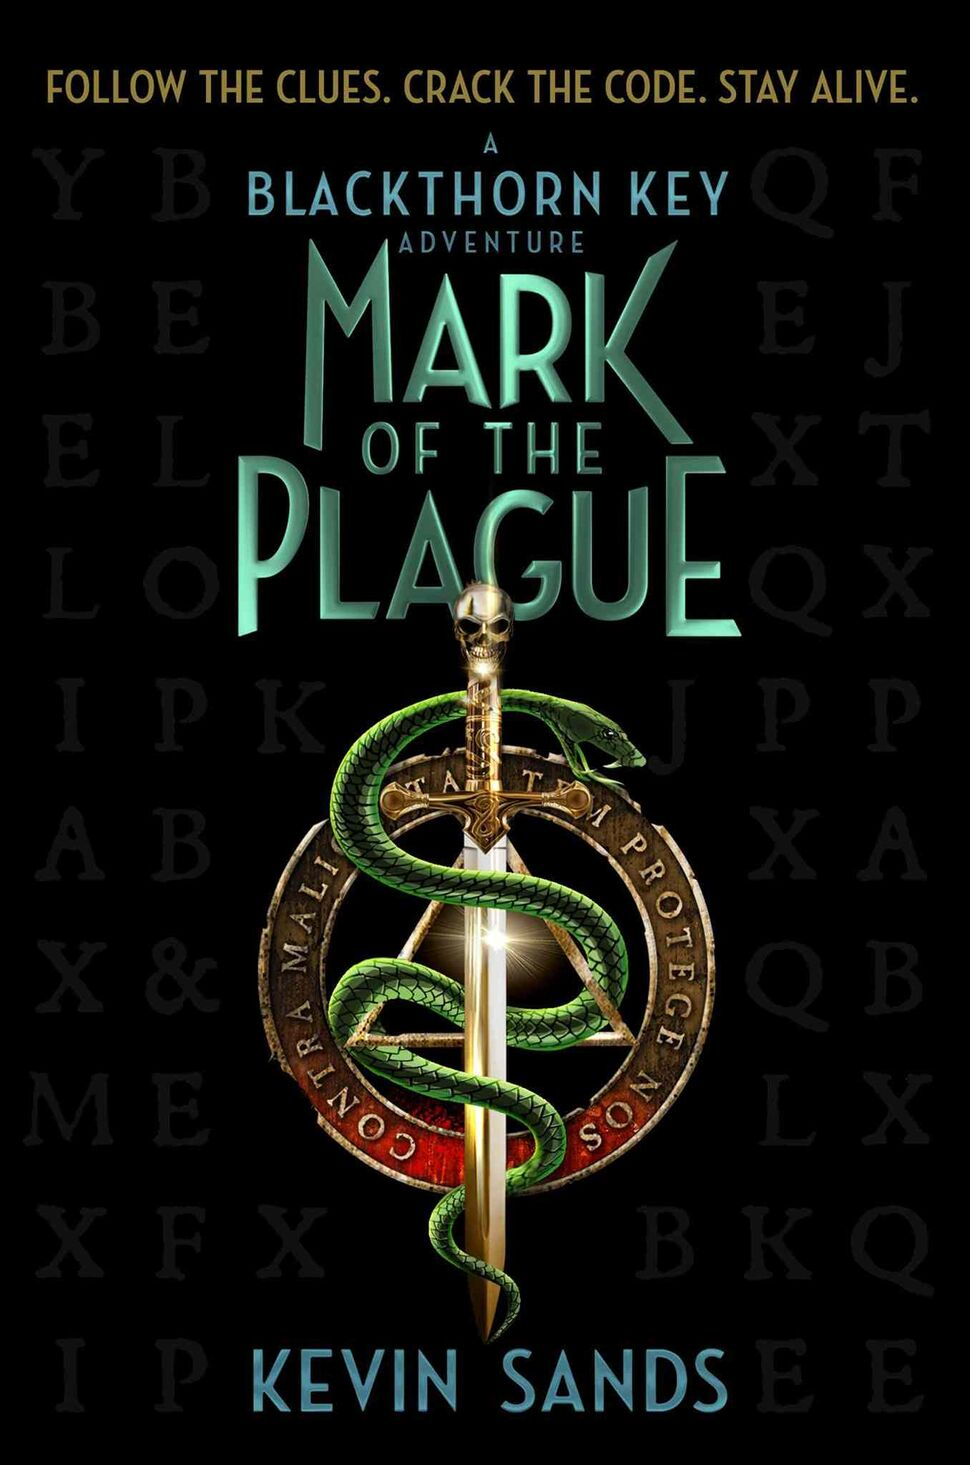 <h3>Mark of the Plague</h3> <br/> By Kevin Sands <br/> <strong>For juvenile readers ages 8 to 12, this page-turning novel set in 17th-century London will intrigue and satisfy as young apprentice apothecary Christopher fights both the plague and evil opponents, and adds some riddles and codes as well.</strong> <br/> — Helen Norrie